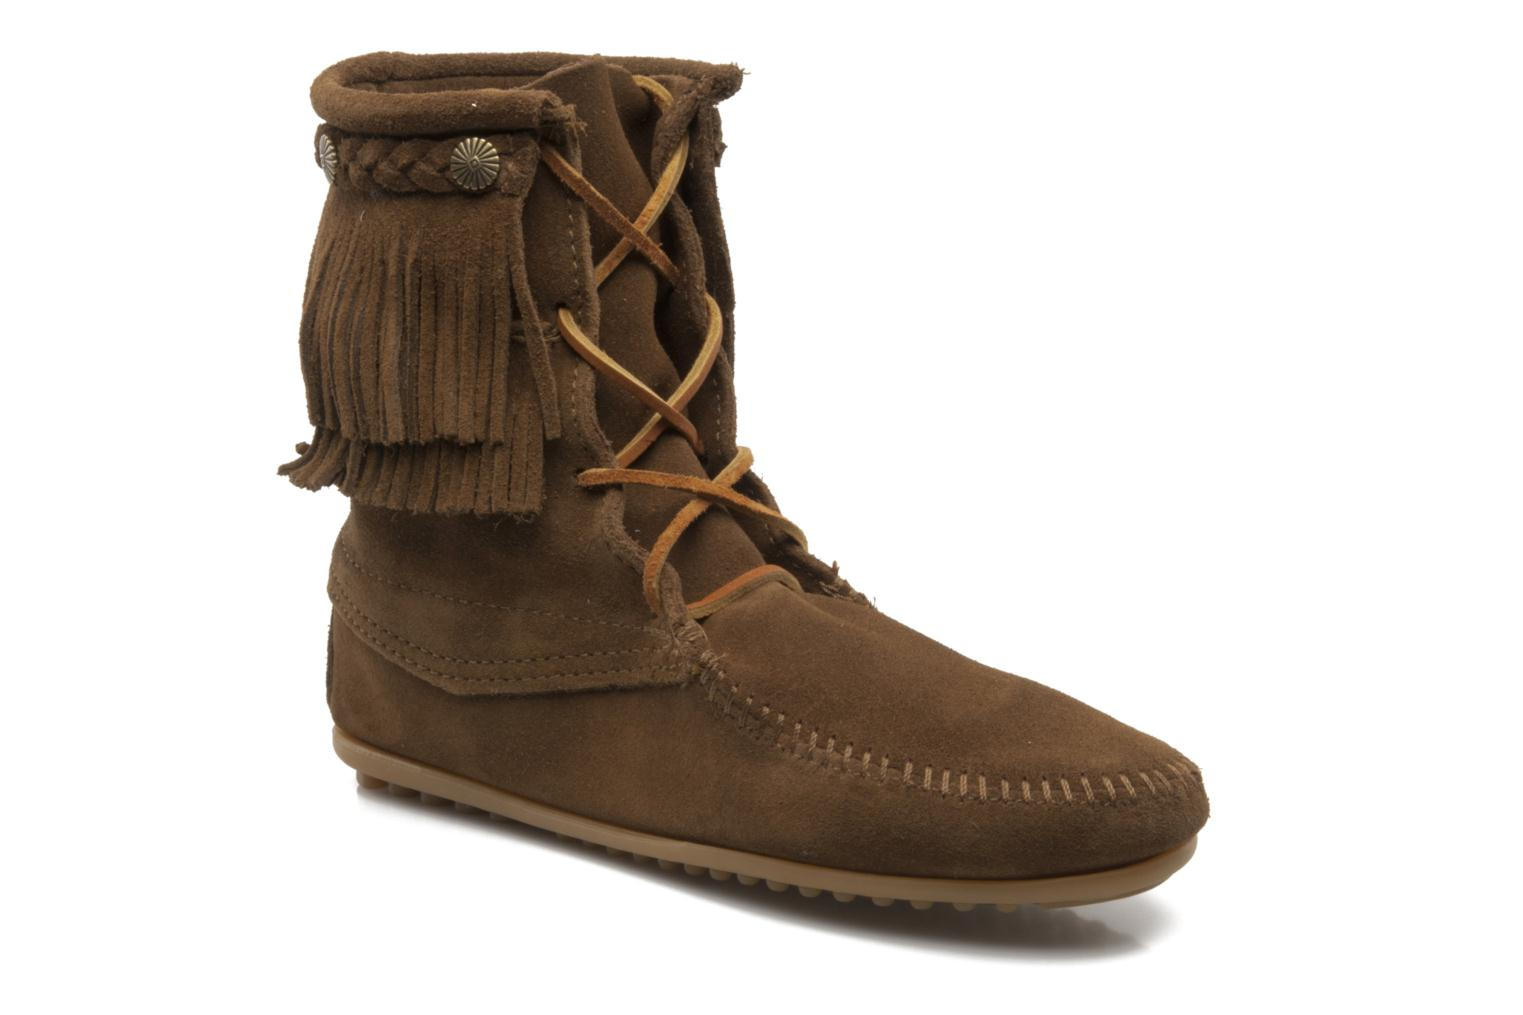 DOUBLE FRINGE TRAMPER DUSTY BROWN SUEDE